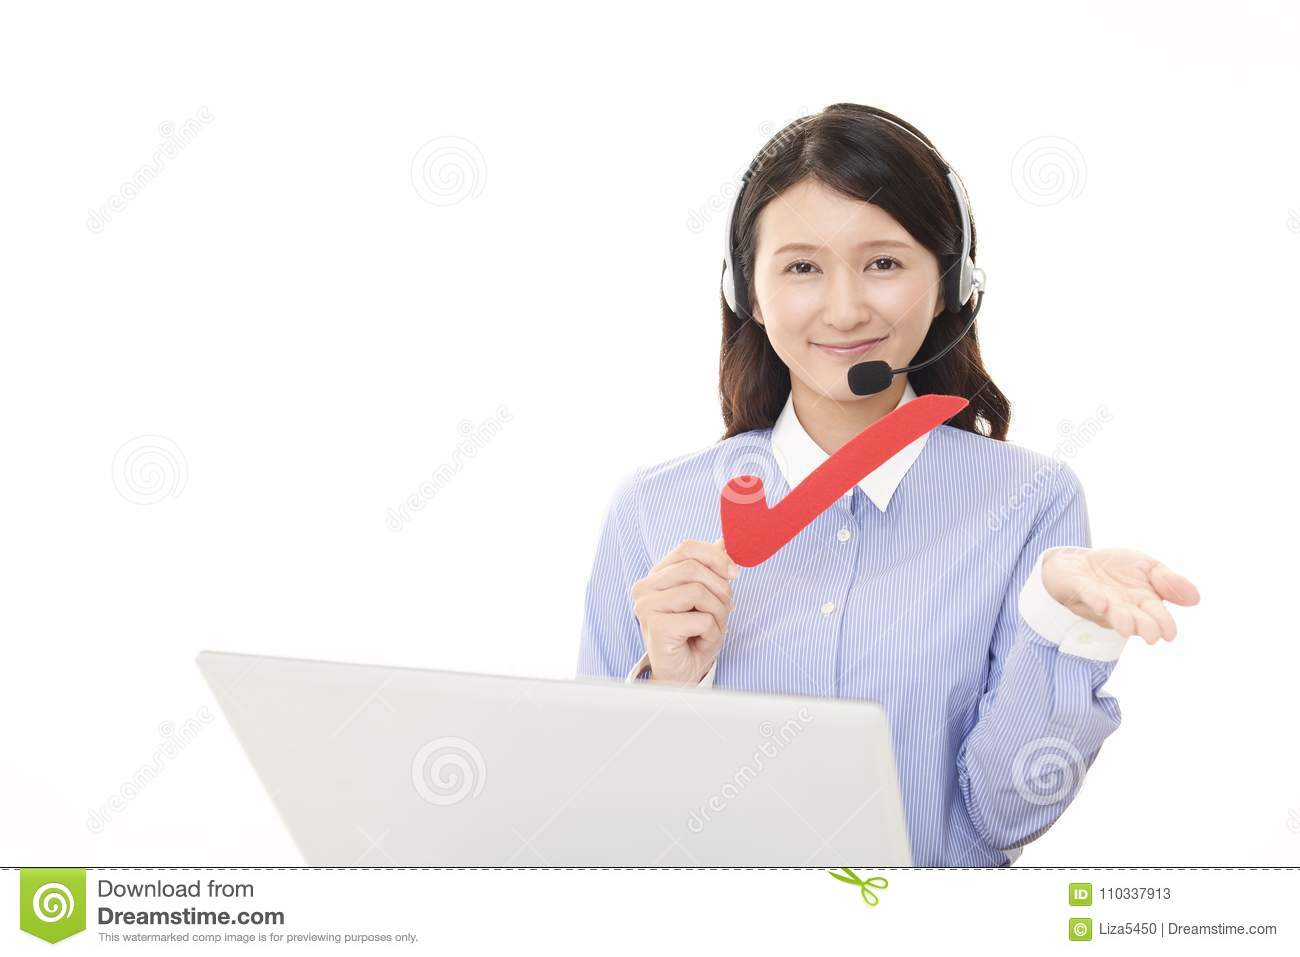 Call center operator with a check mark